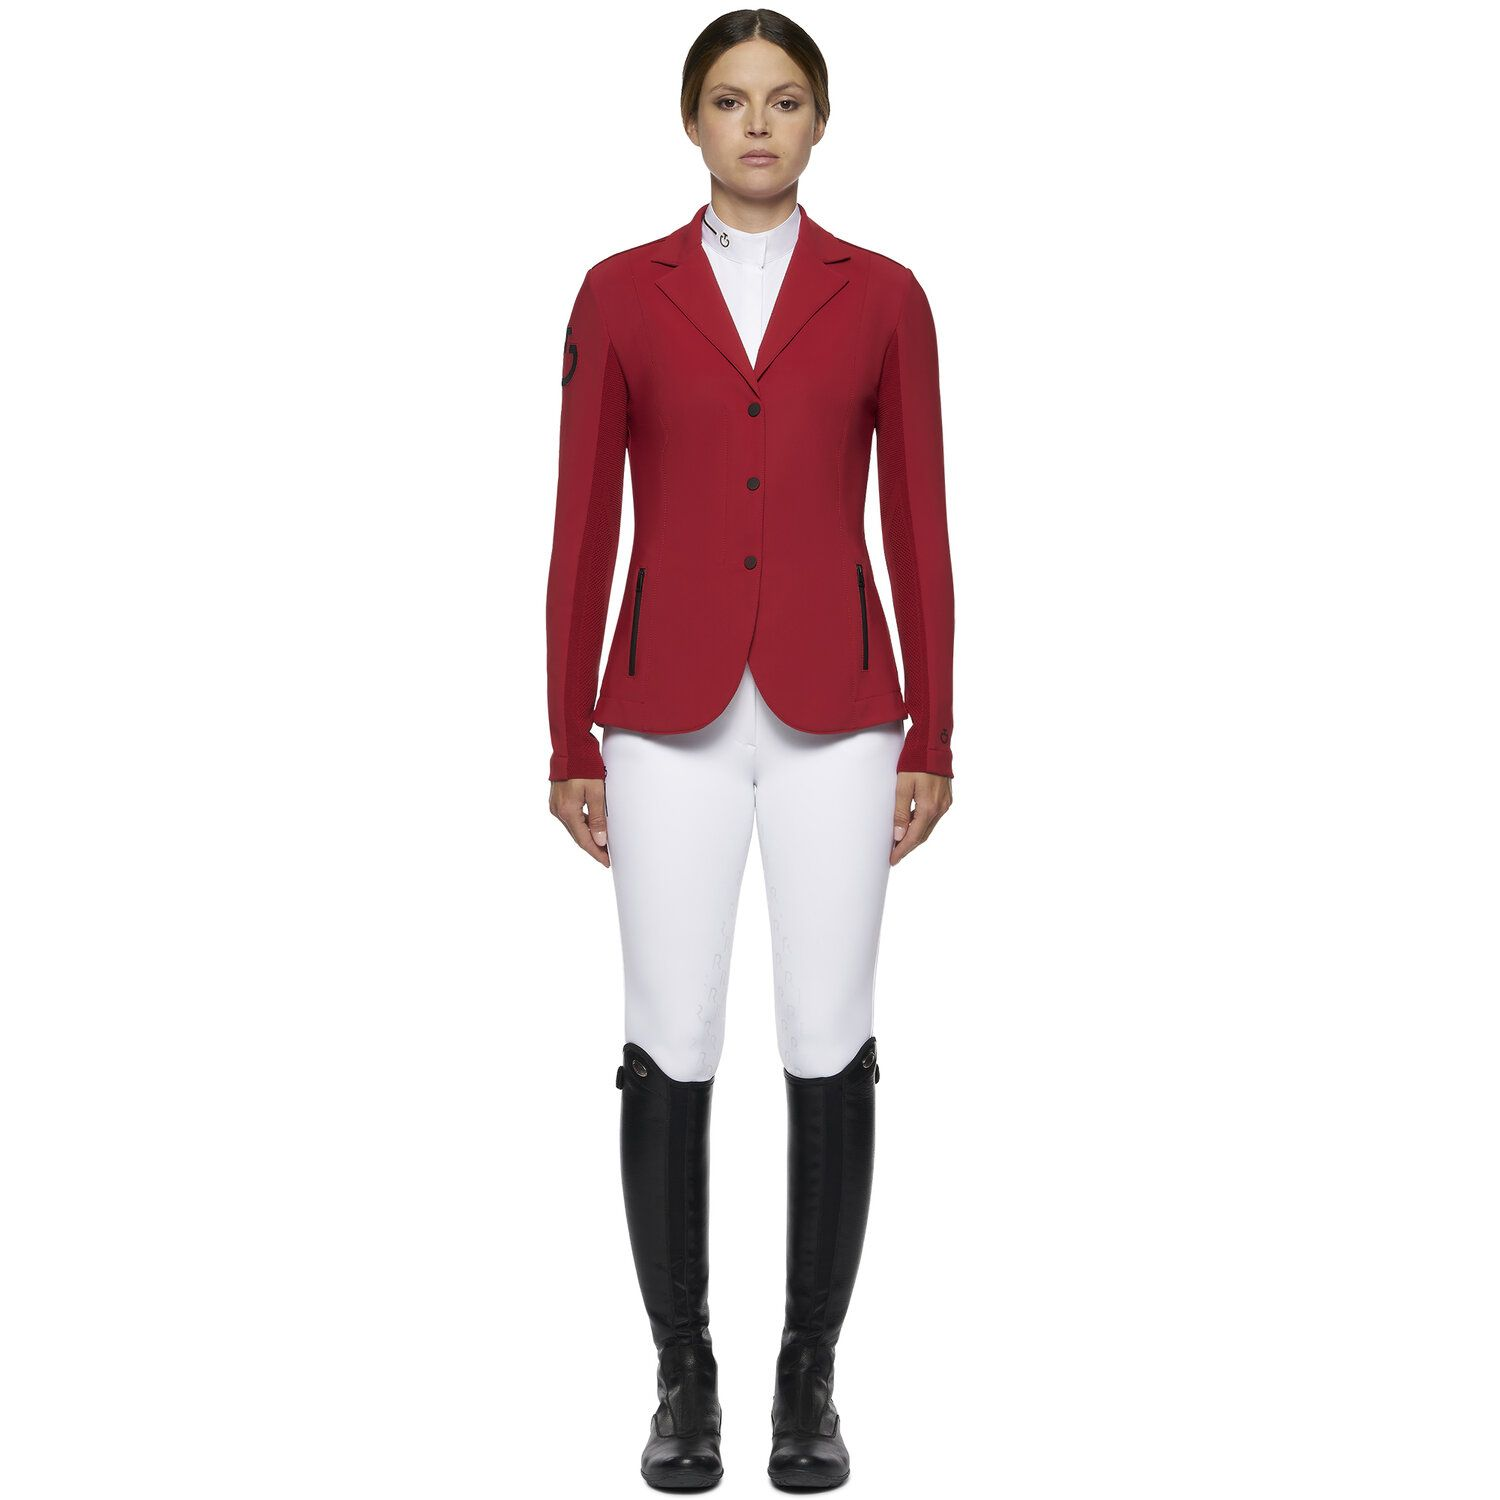 Women's REVOLUTION zip riding jacket with technical knit inserts